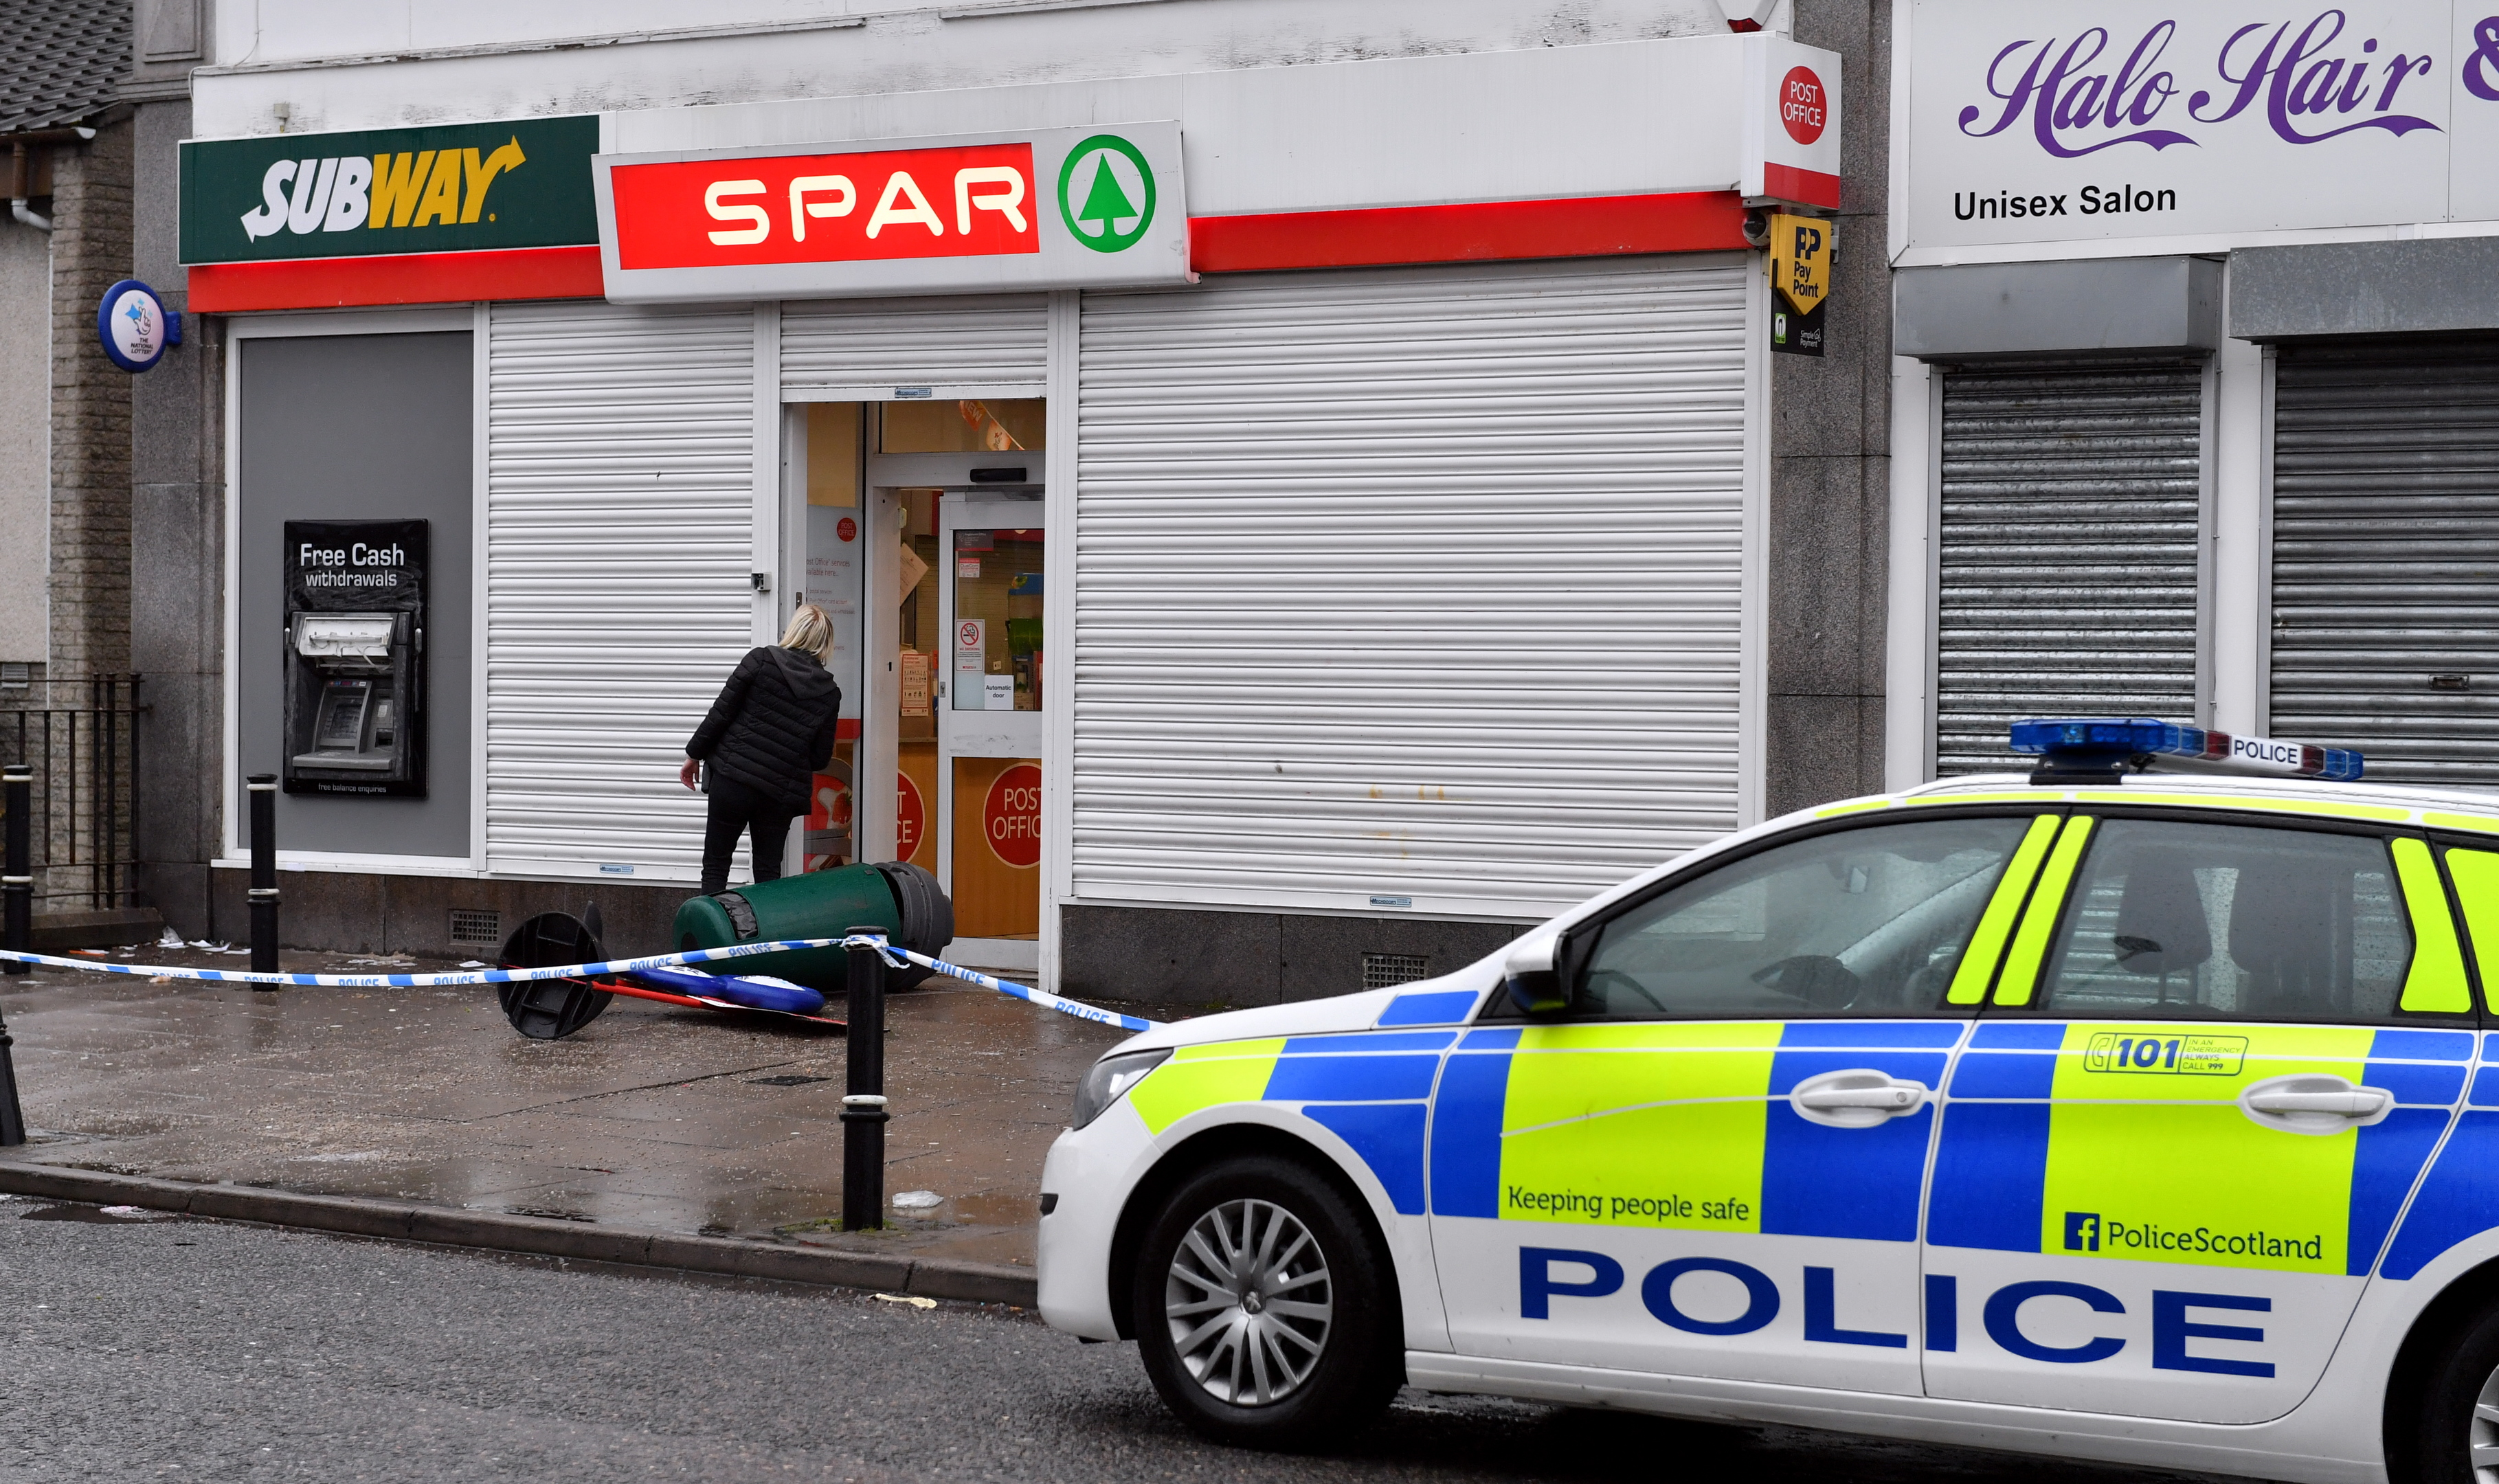 Police Scotland attend the scene of a robbery at the Spar on Clifton Road, Aberdeen.